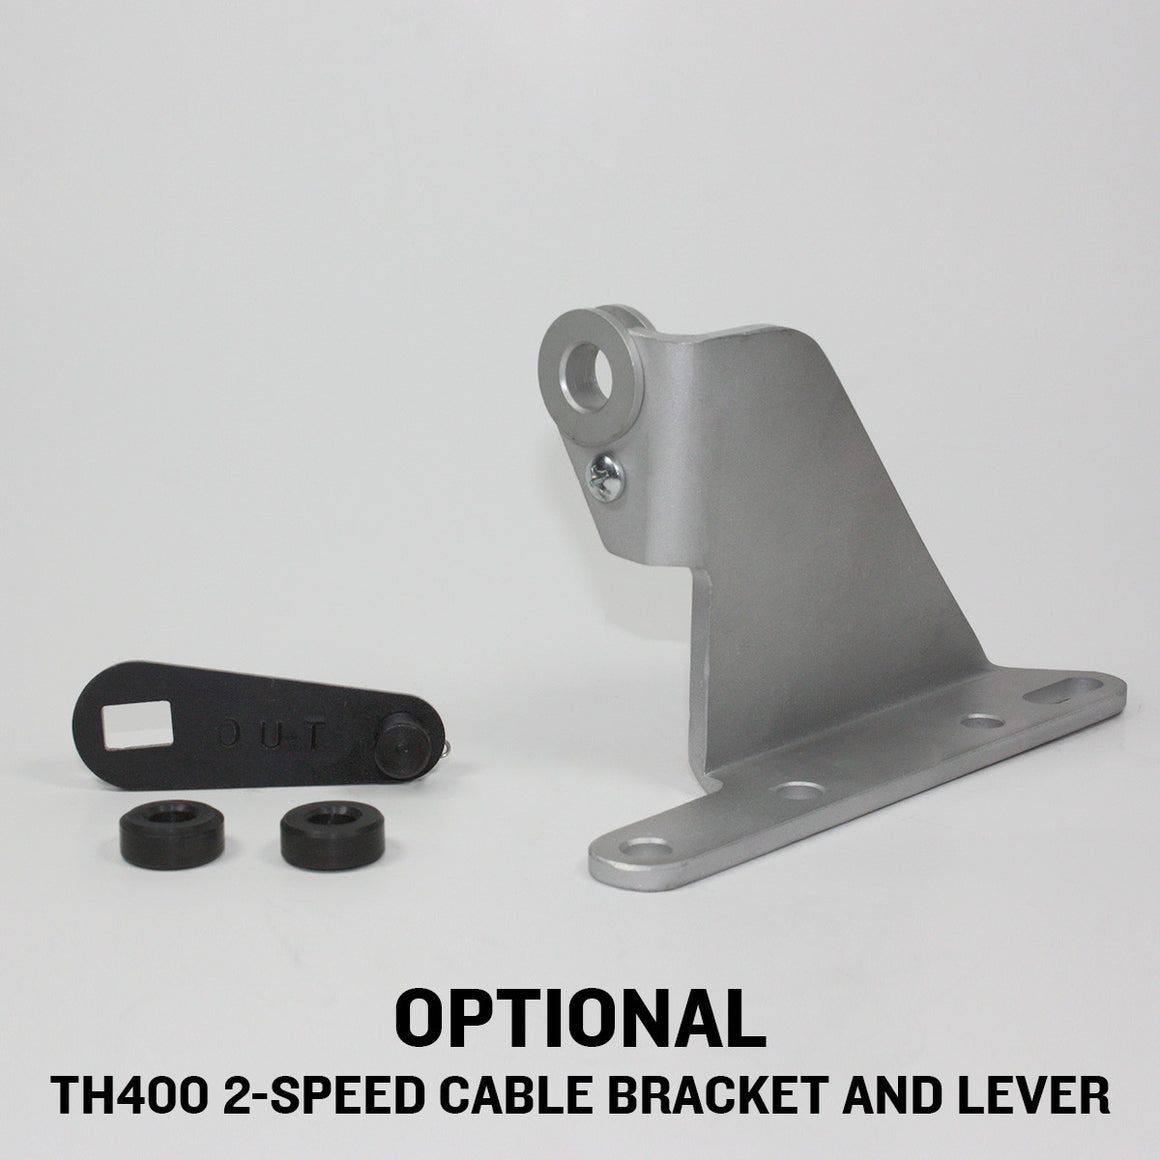 PPP616 cable bracket and lever for th400 2speed opt_4c8d7017 bbfd 4e0f 8eac 19972fd41e93_580x@2x?v=1492194564 precision performance kwikshift 1 air shifter 2 speed push pattern Von Duprin Replacement Parts at bayanpartner.co